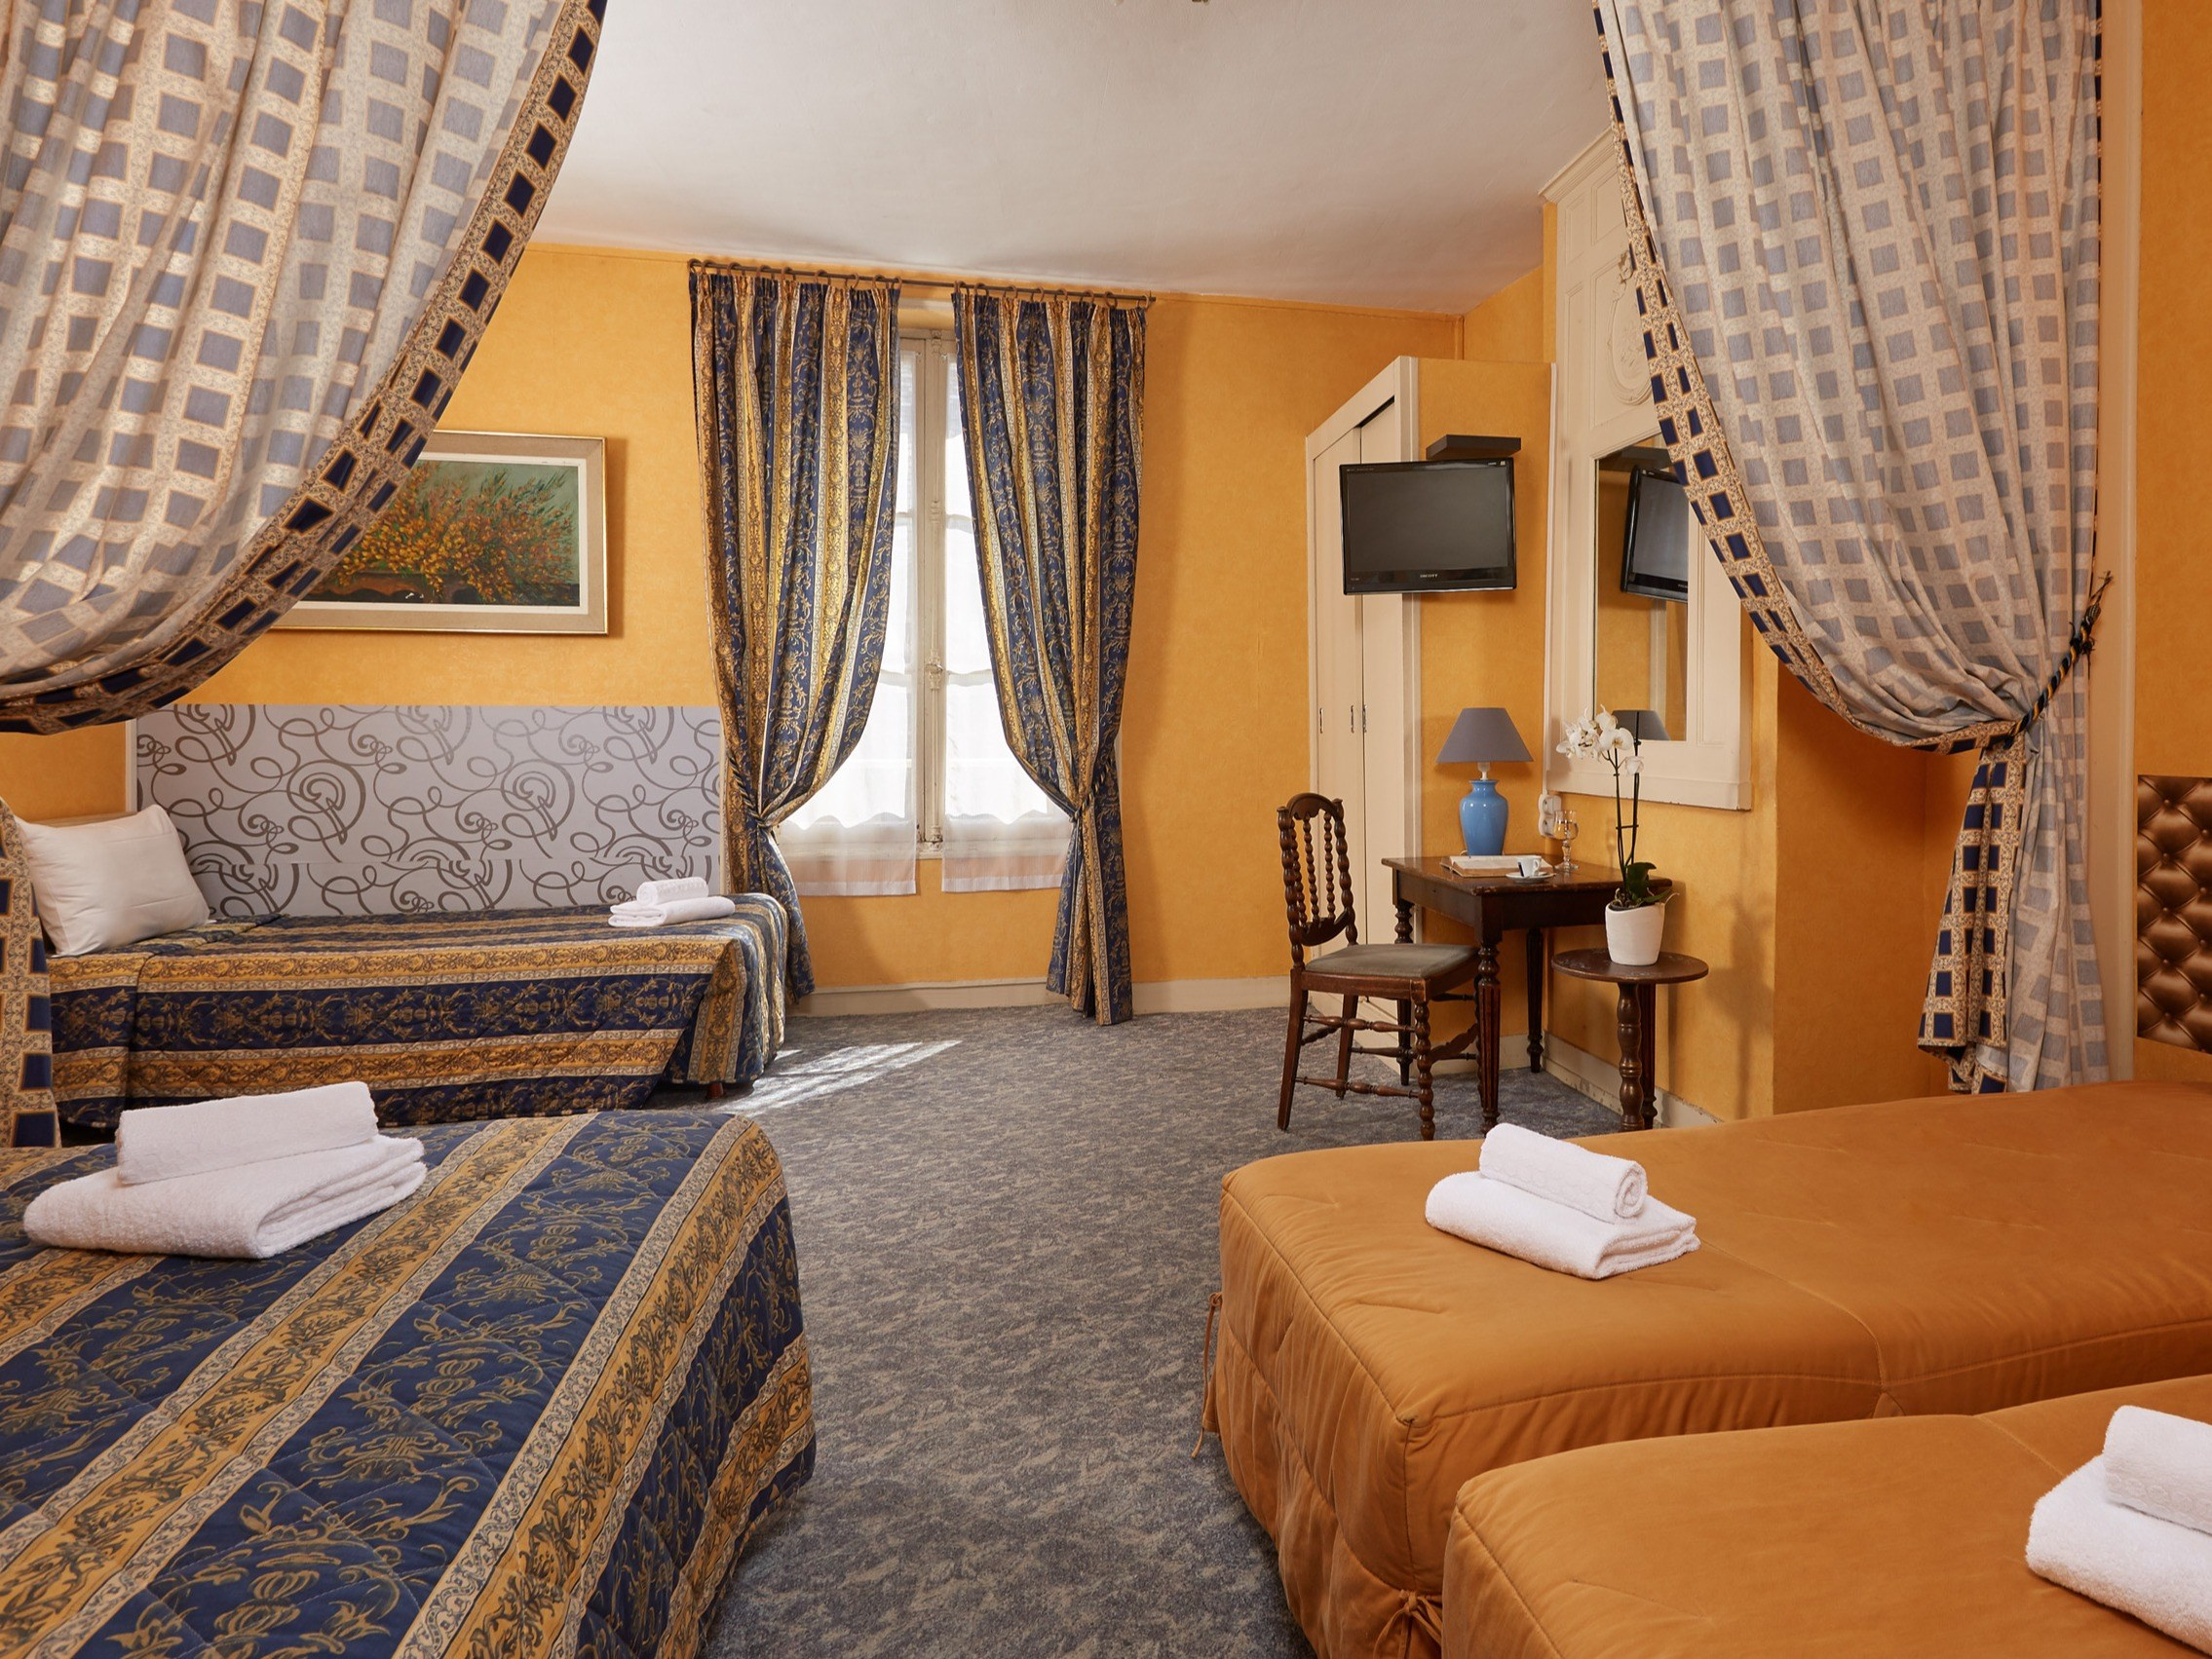 Hotel-France-Guise-Blois-chambre-familiale-5-pers